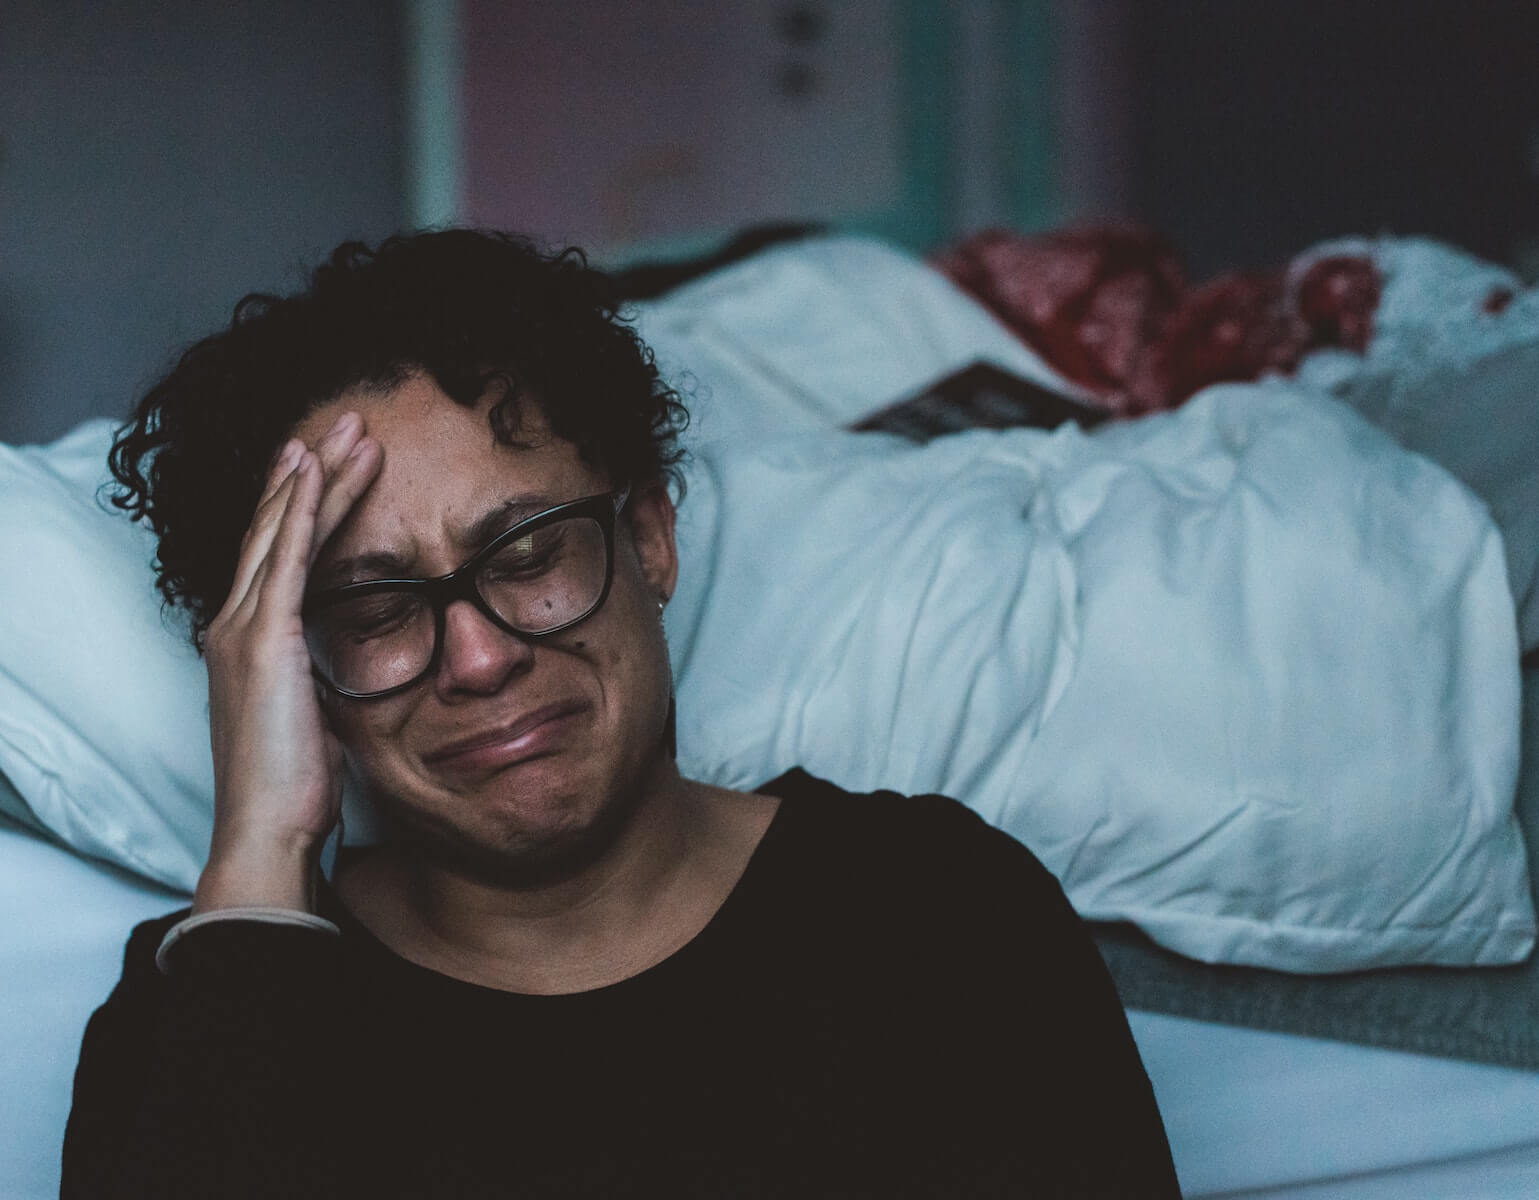 woman sitting in bedroom hand to face crying covid19 nursing moral injury